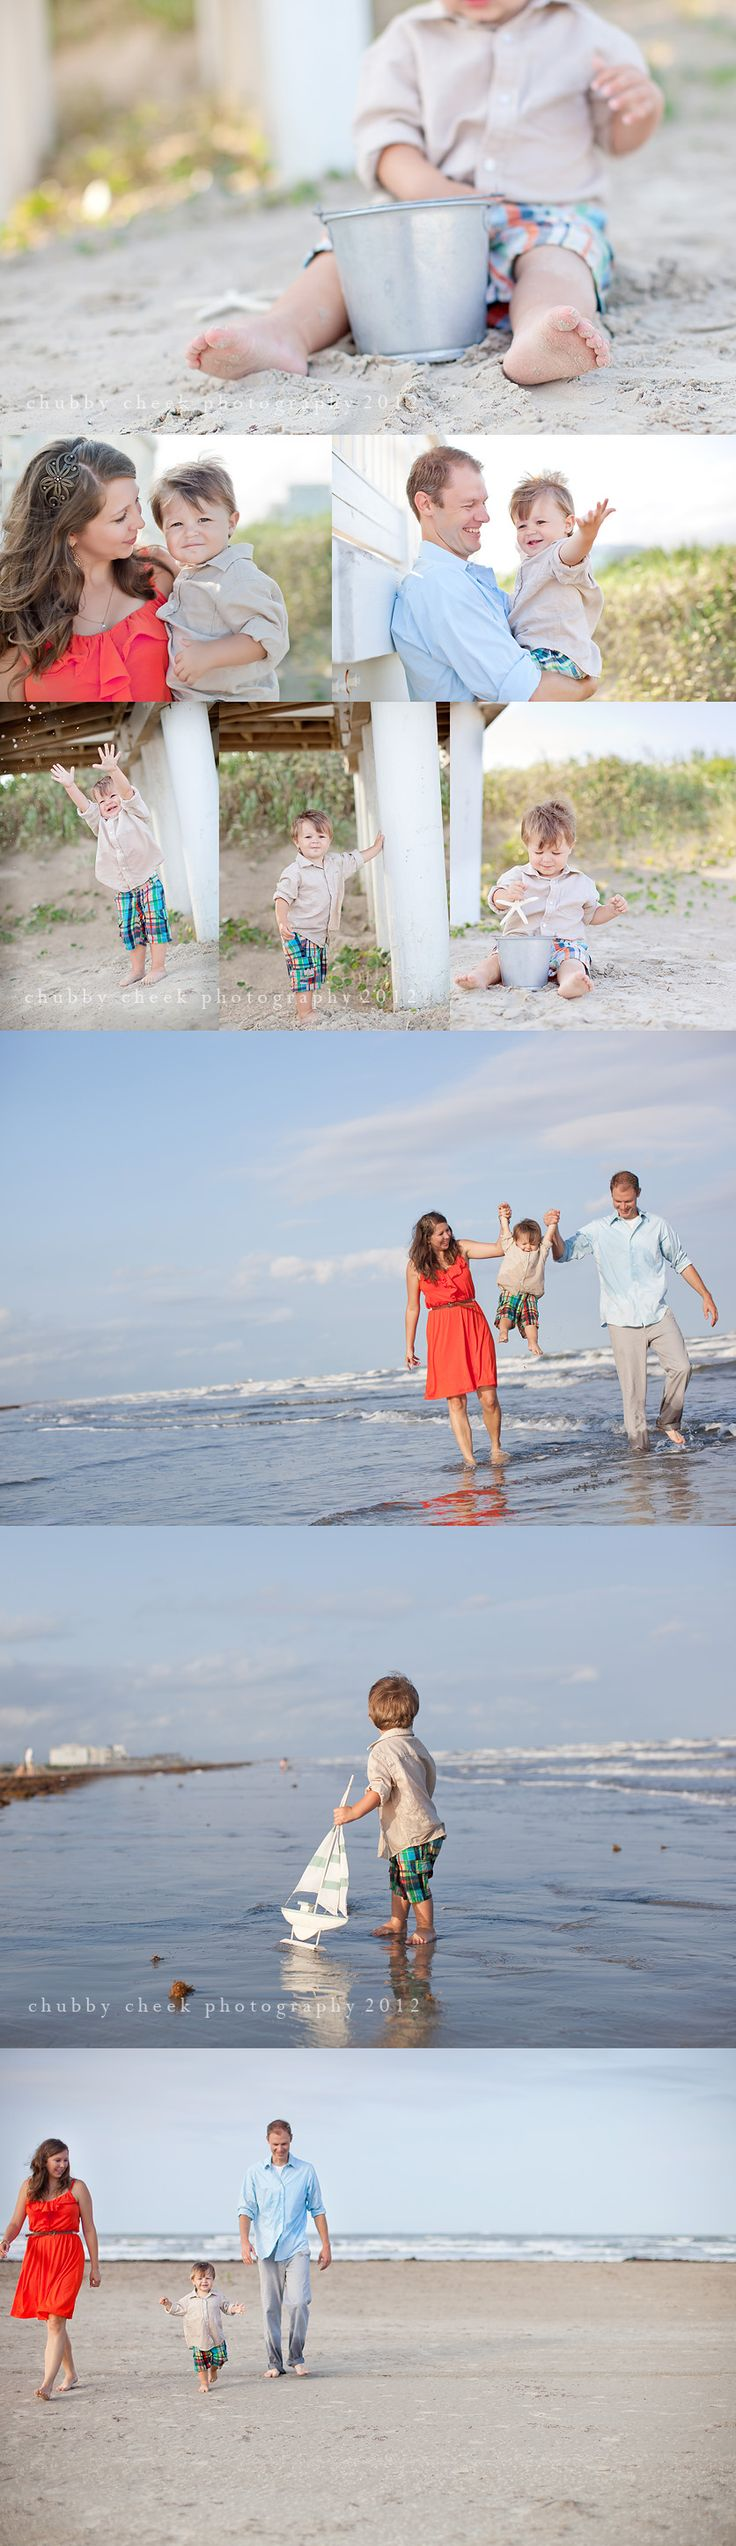 Fun Summer #family #photo #session at the beach.    ©Chubby Cheek Photography @The Fort, #RisingStar